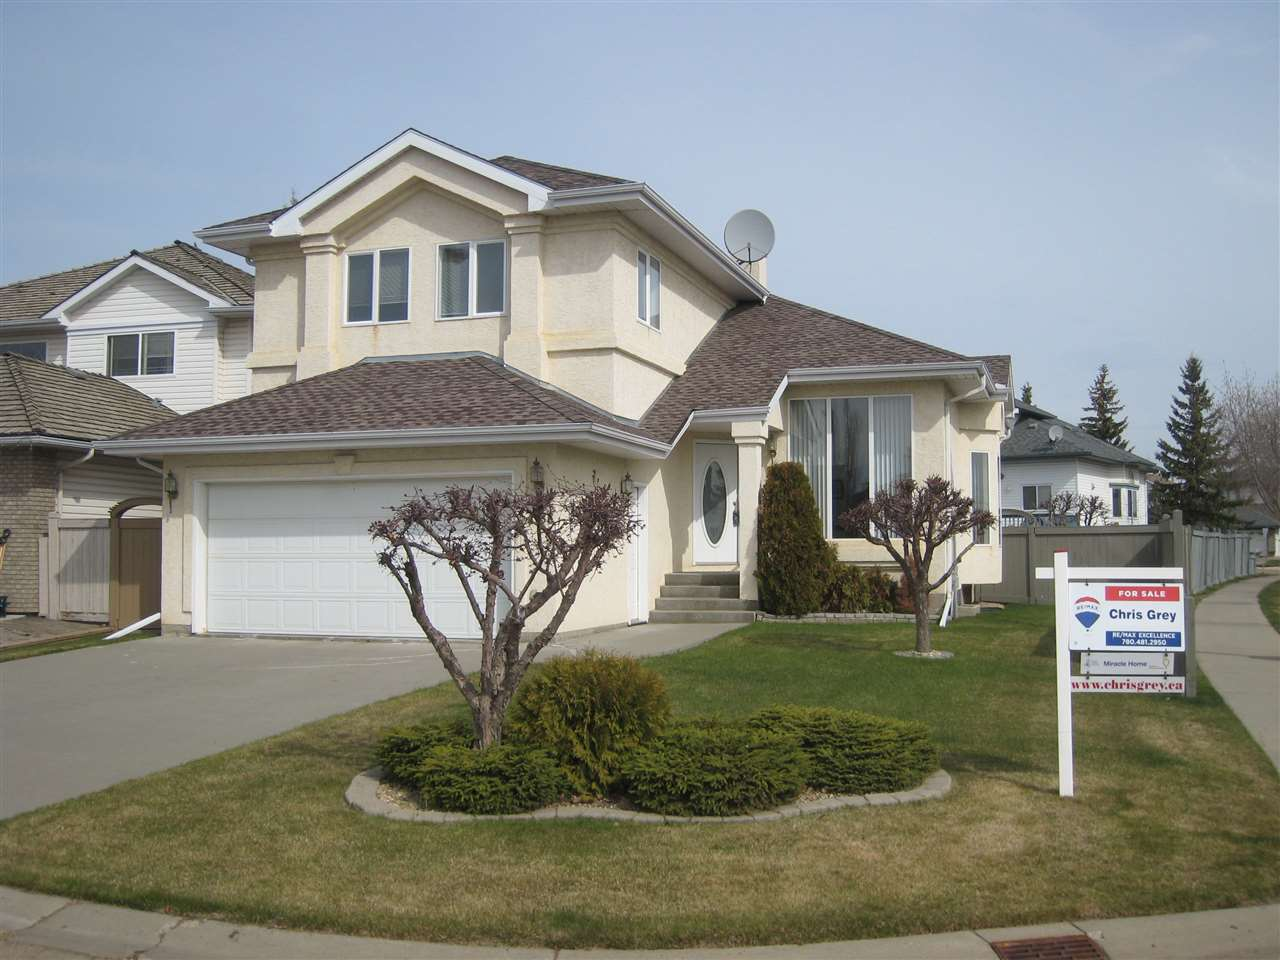 MLS® listing #E4144463 for sale located at 1136 116 Street